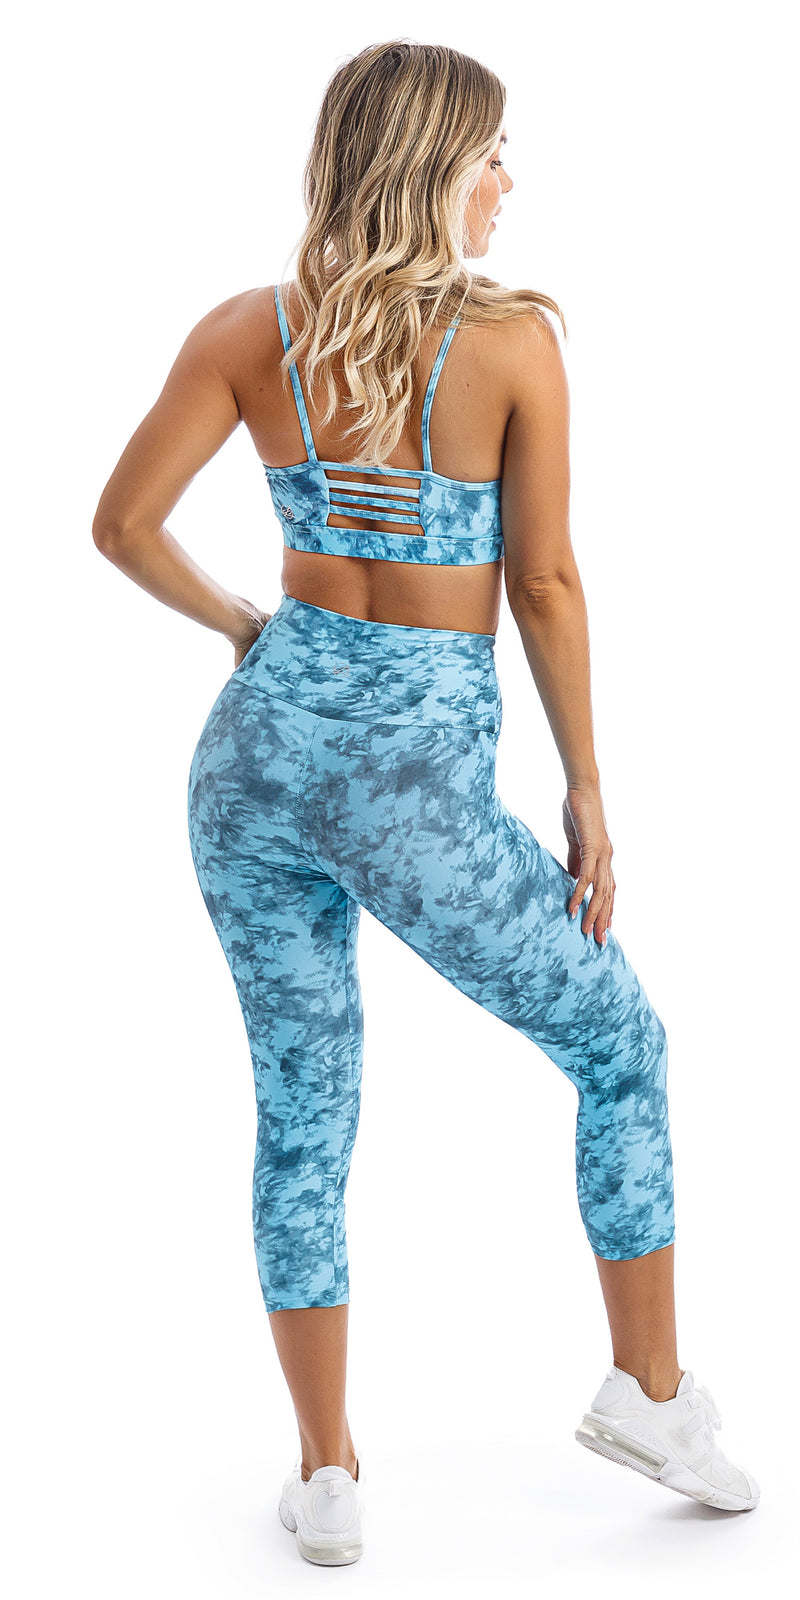 Rear View: Girl with hand on hip wearing blue tie dye blue crush print ultra high waist capri leggings & matching racer back bra